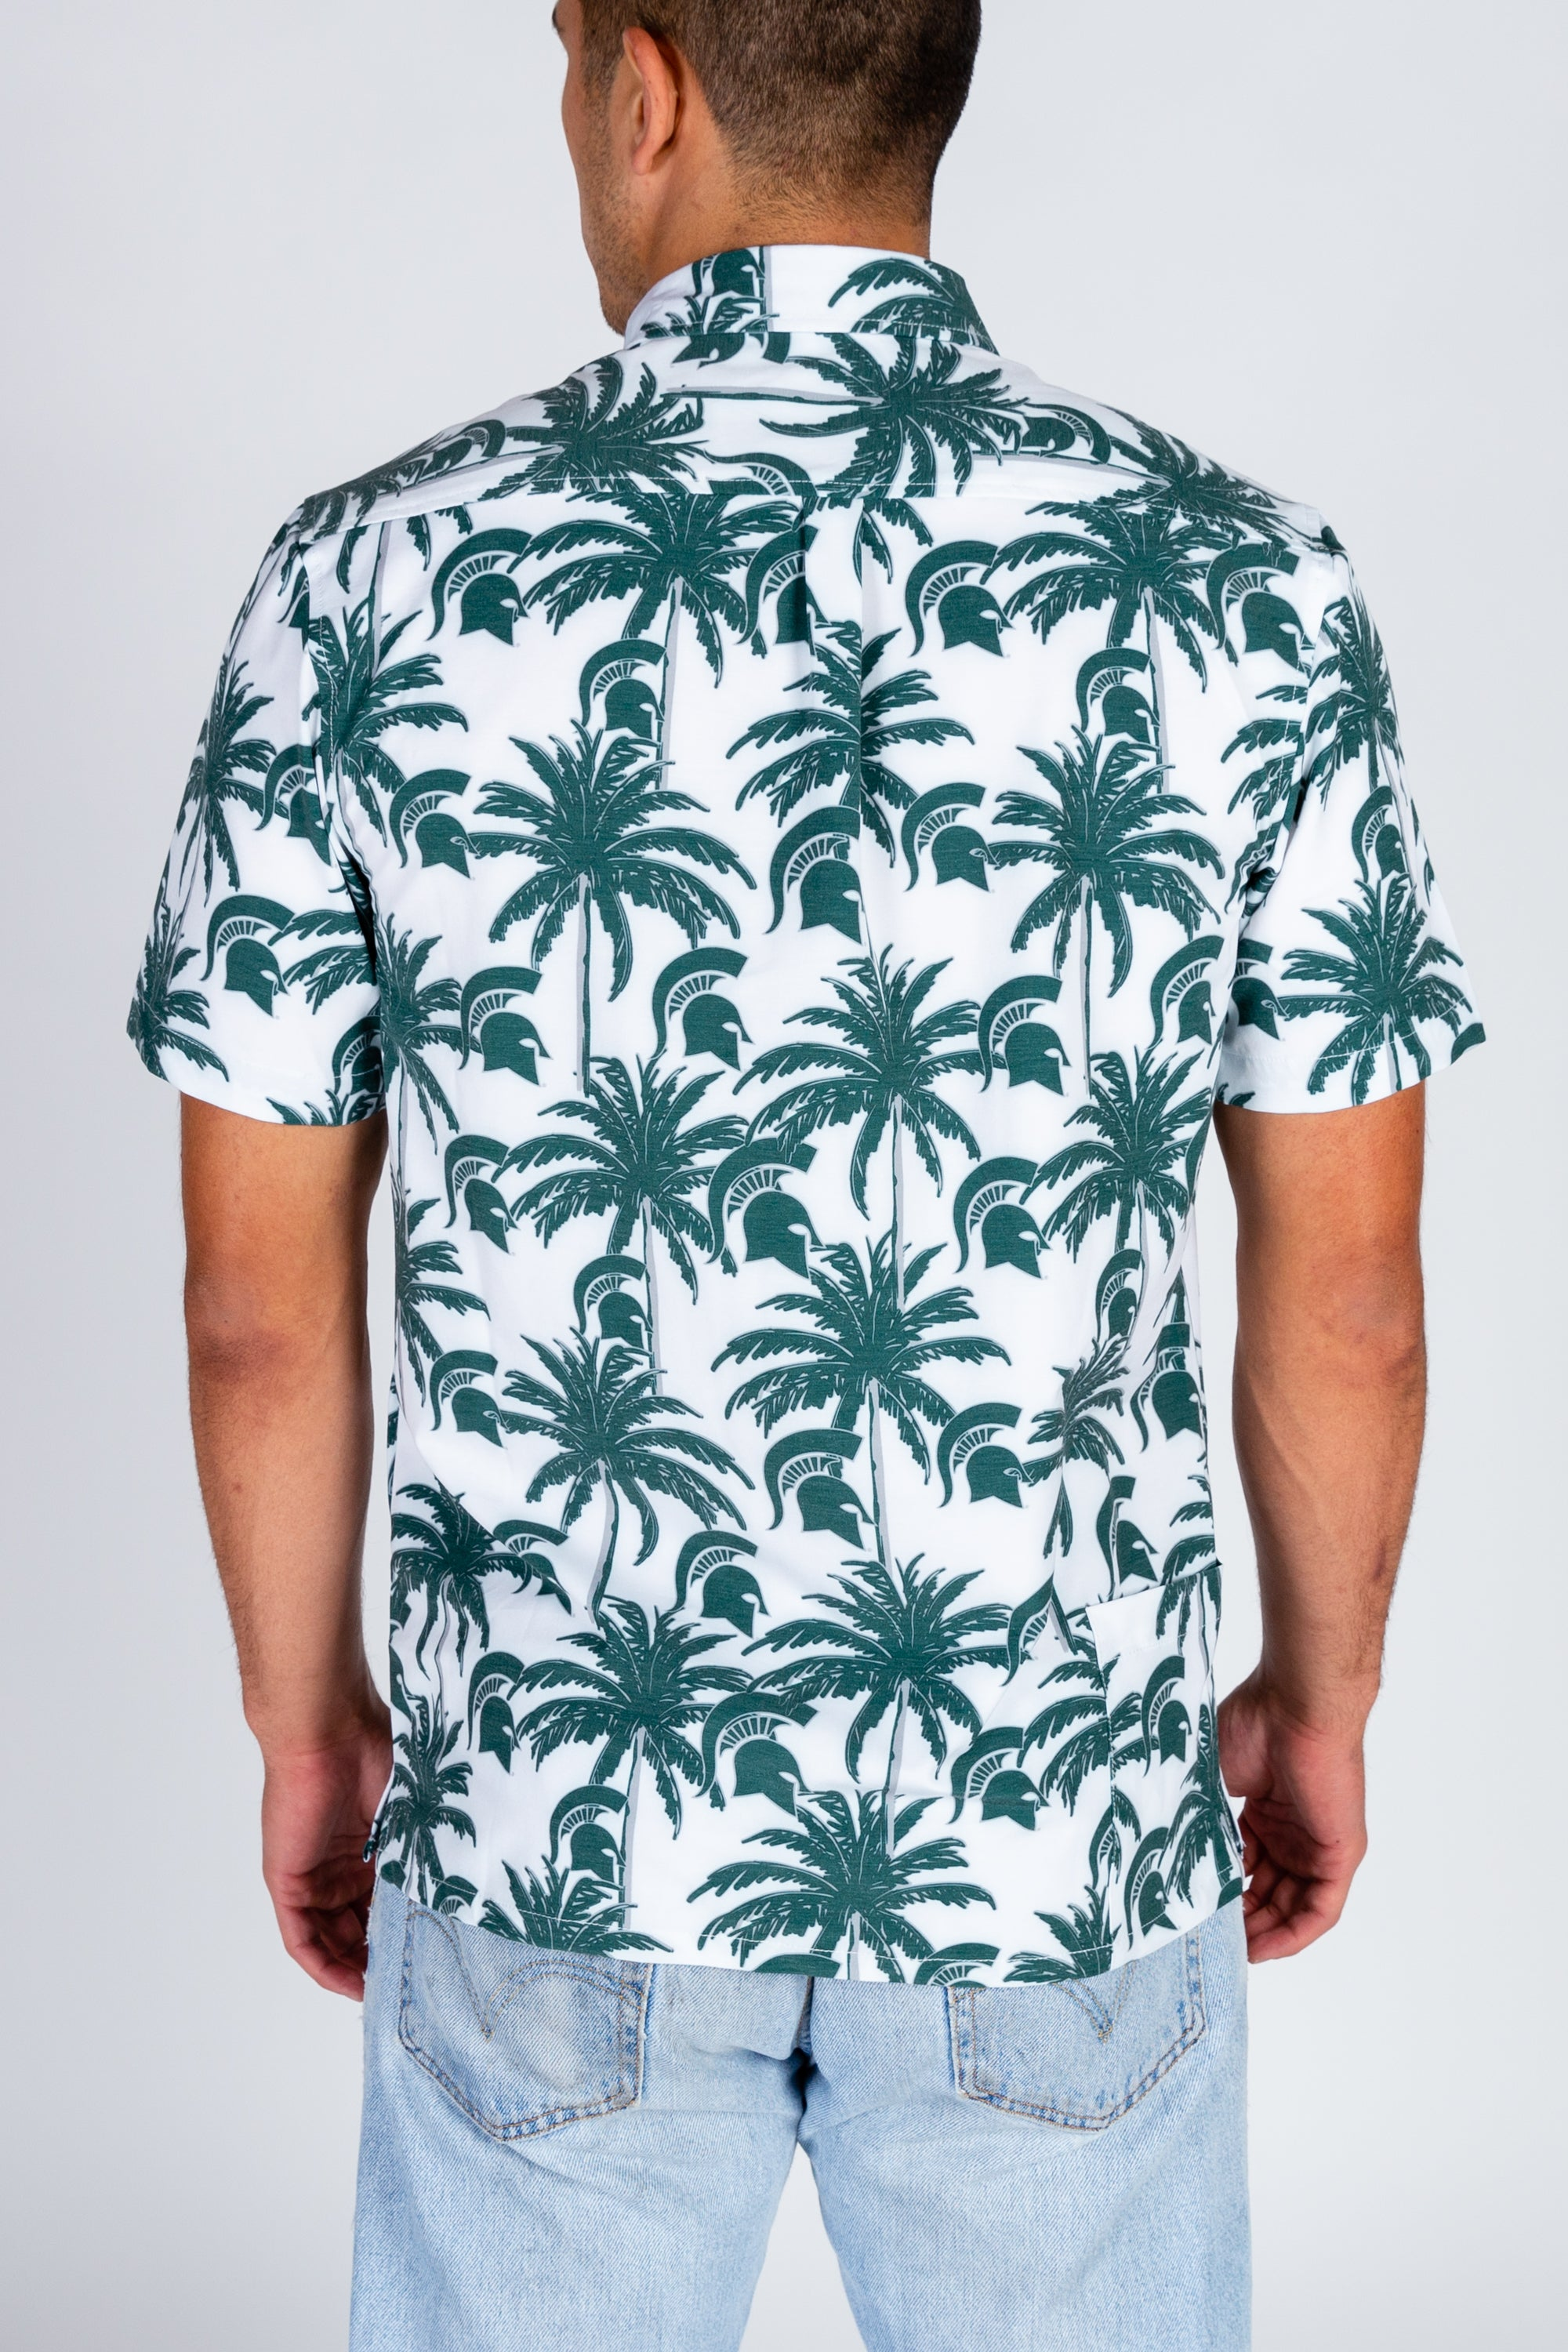 MSU Pride Palm Tree Print Shirt